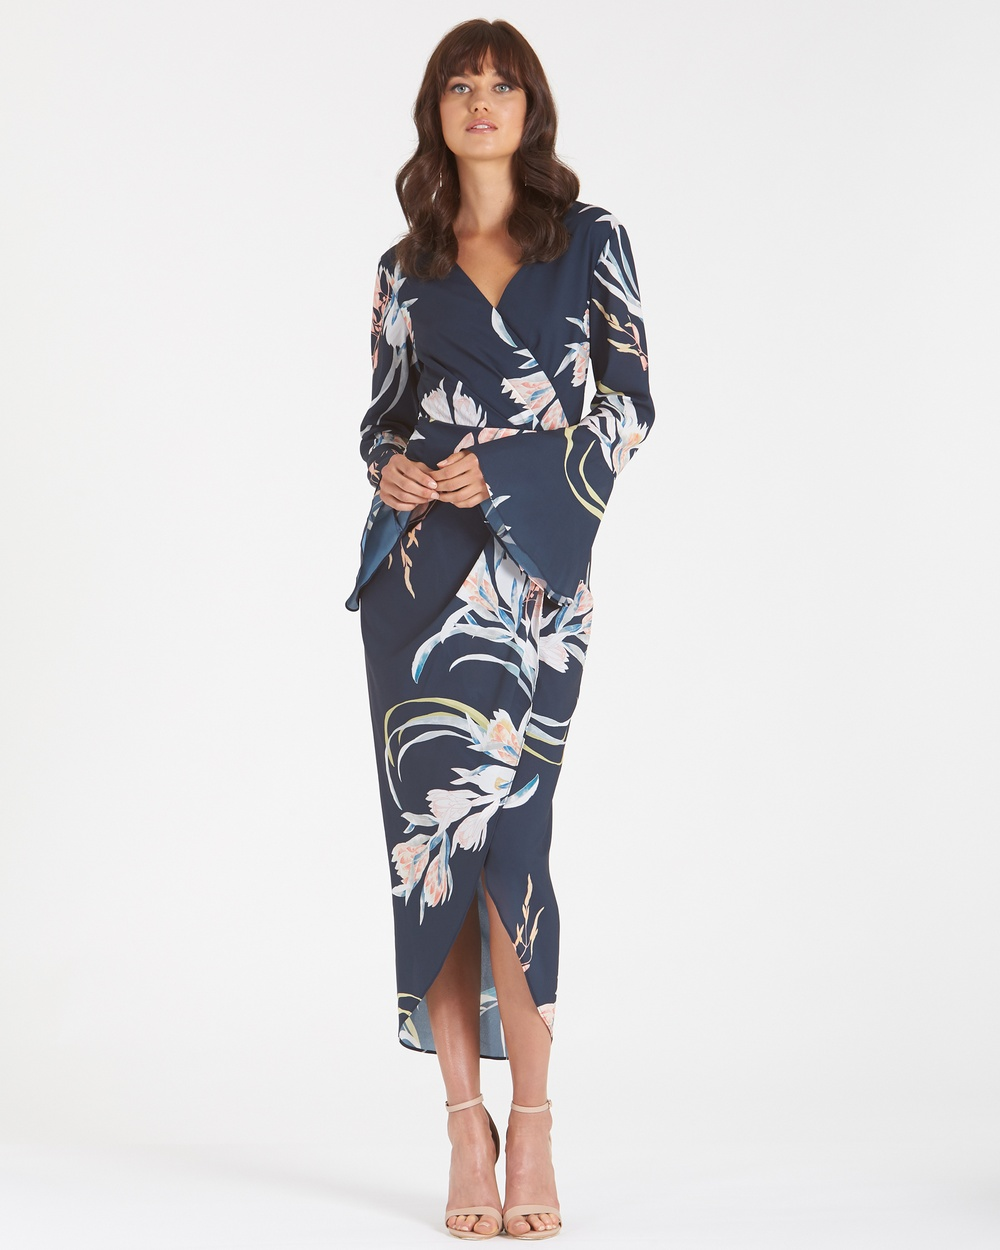 Amelius Multi Floral Orient Print Dress